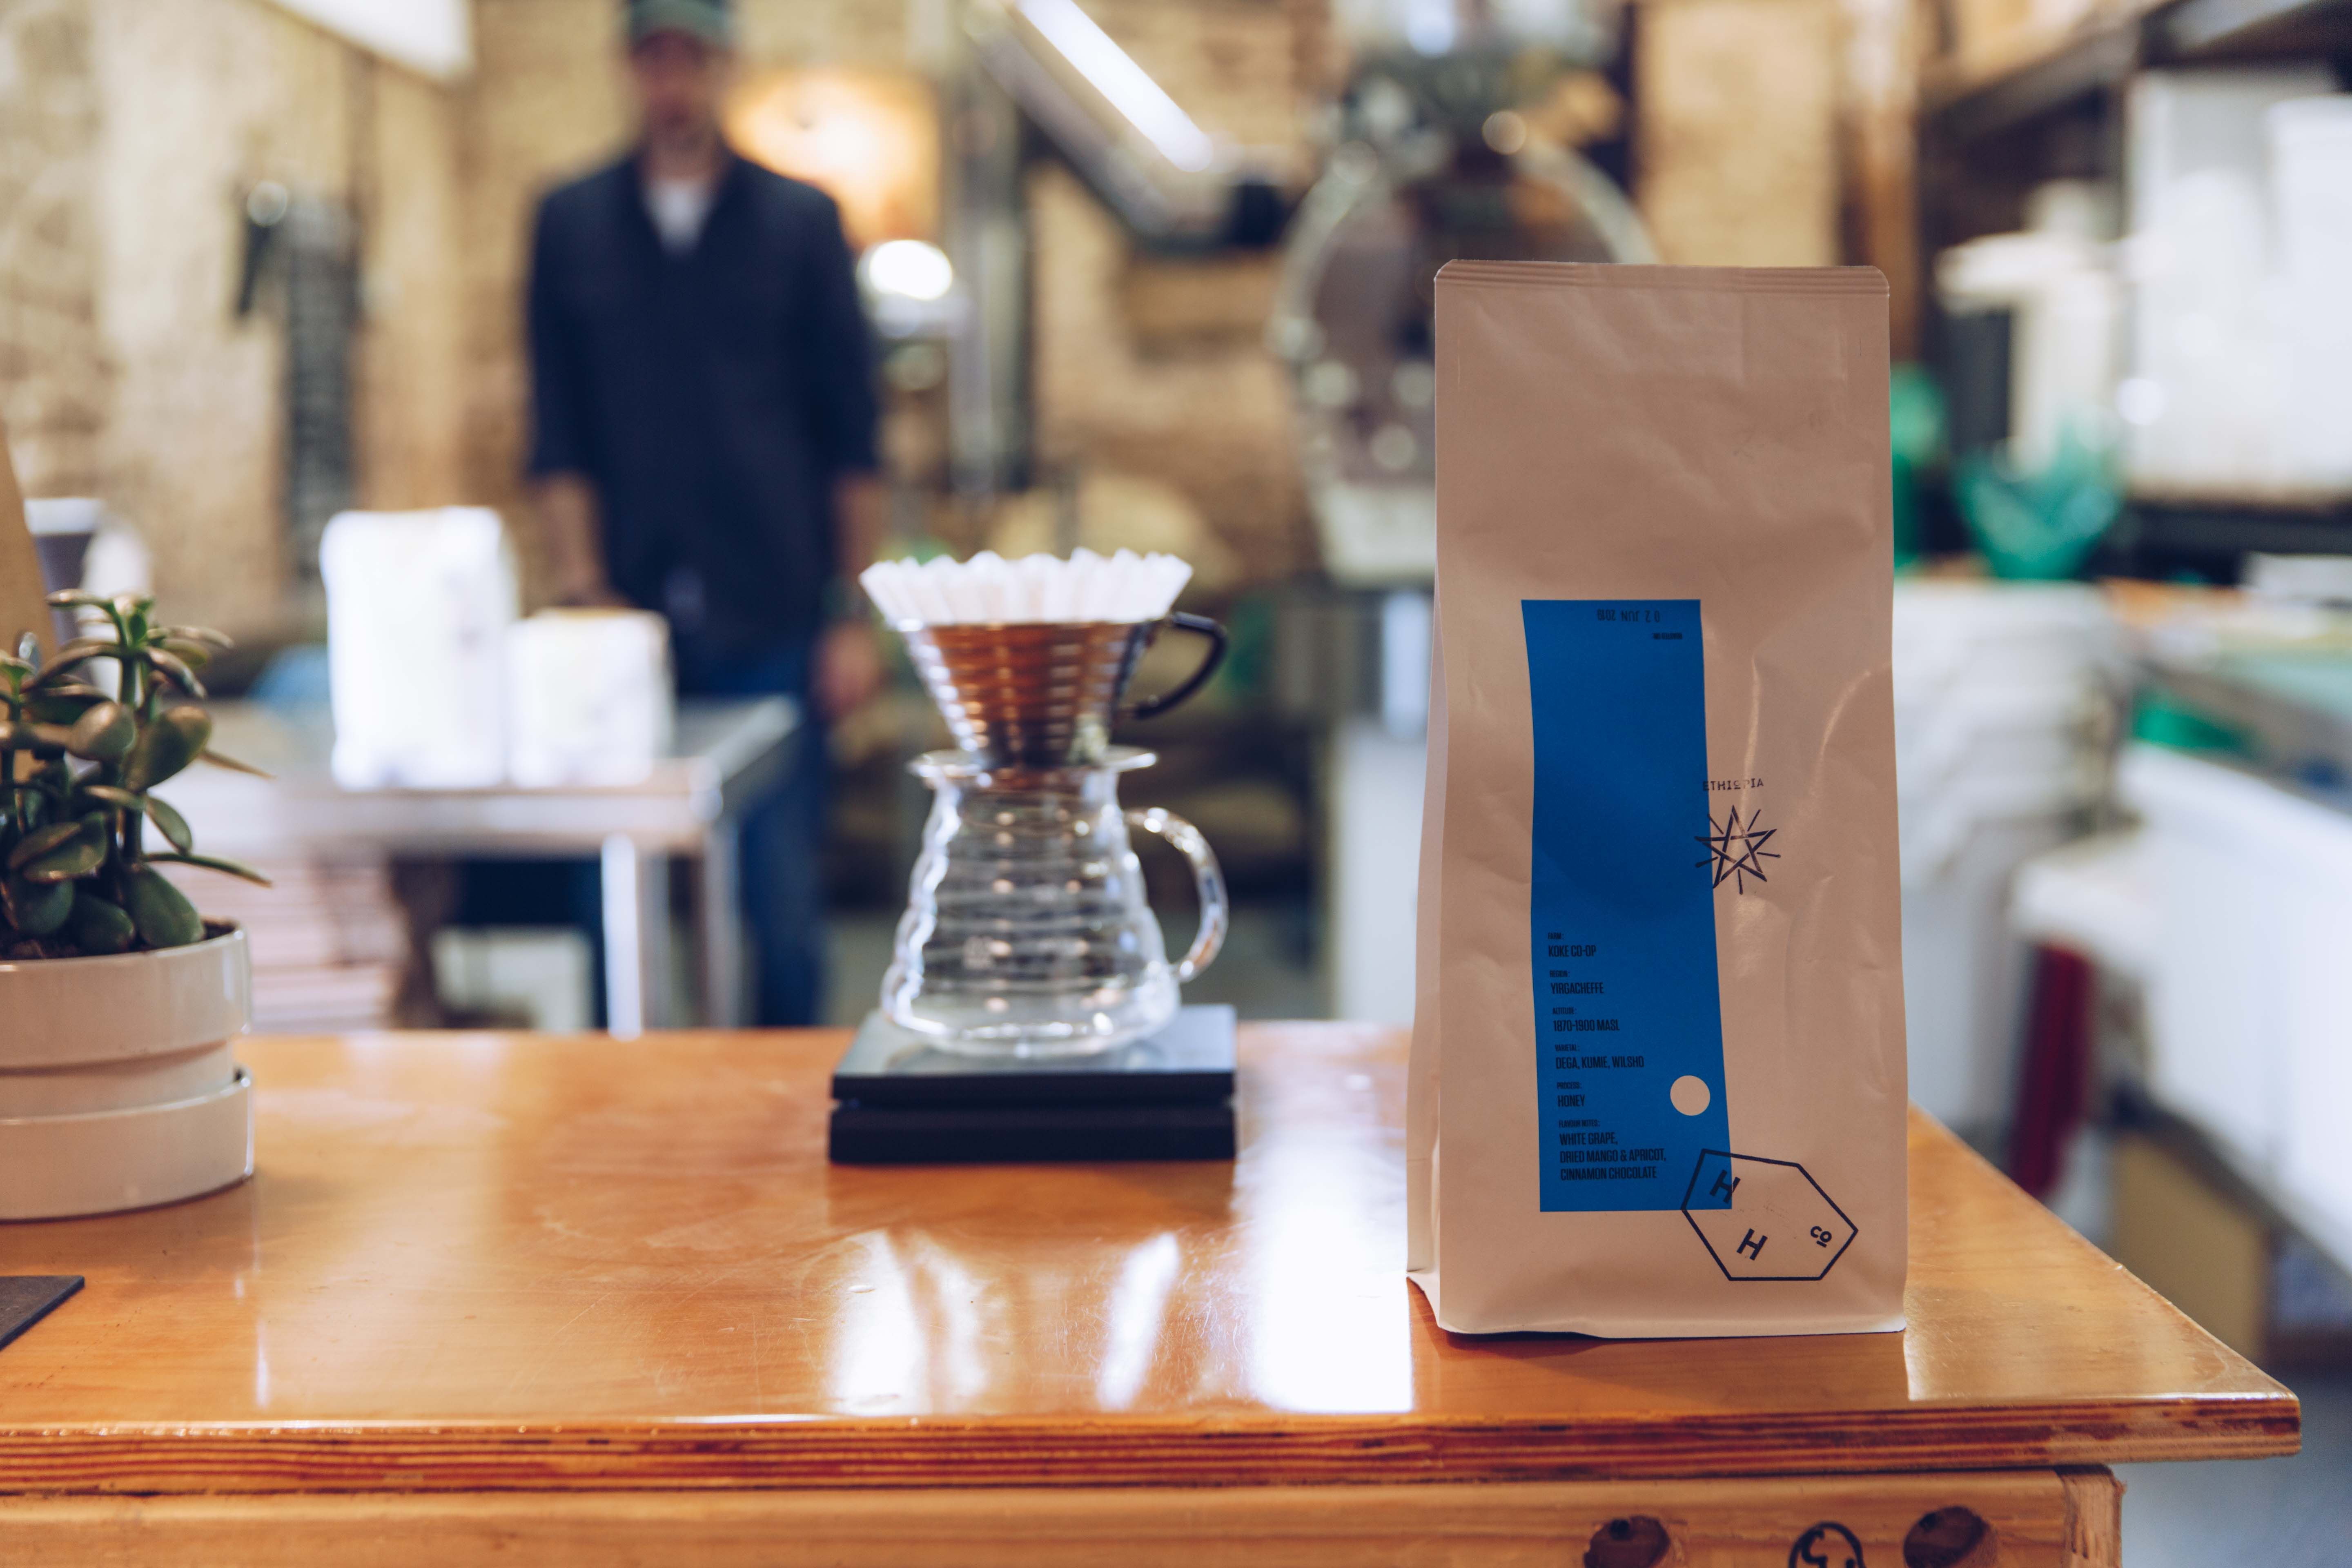 roasters/hundred-house-coffee/images/h59a-hundred-house-coffee.jpg